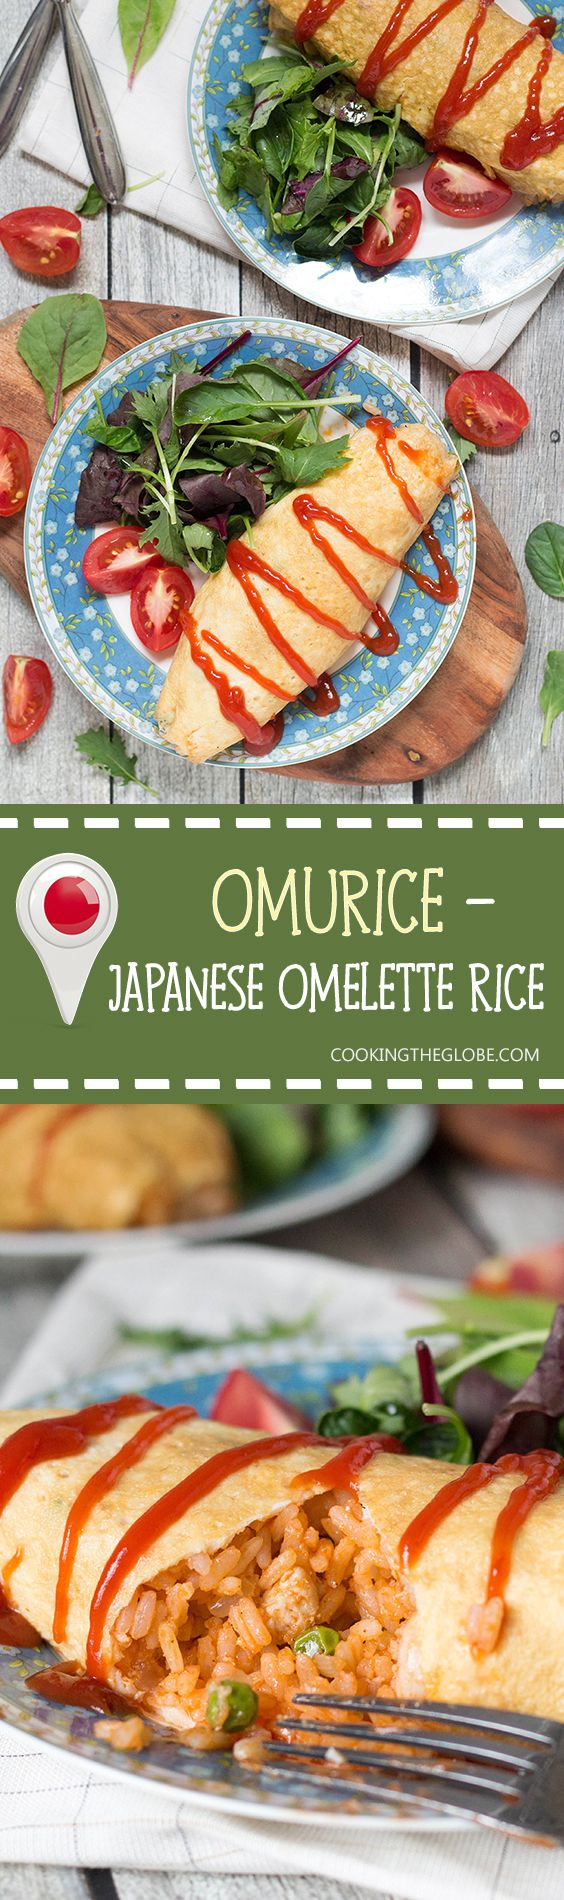 "Omurice is a Japanese dish which got its name from a combo of words ""omelette""…"